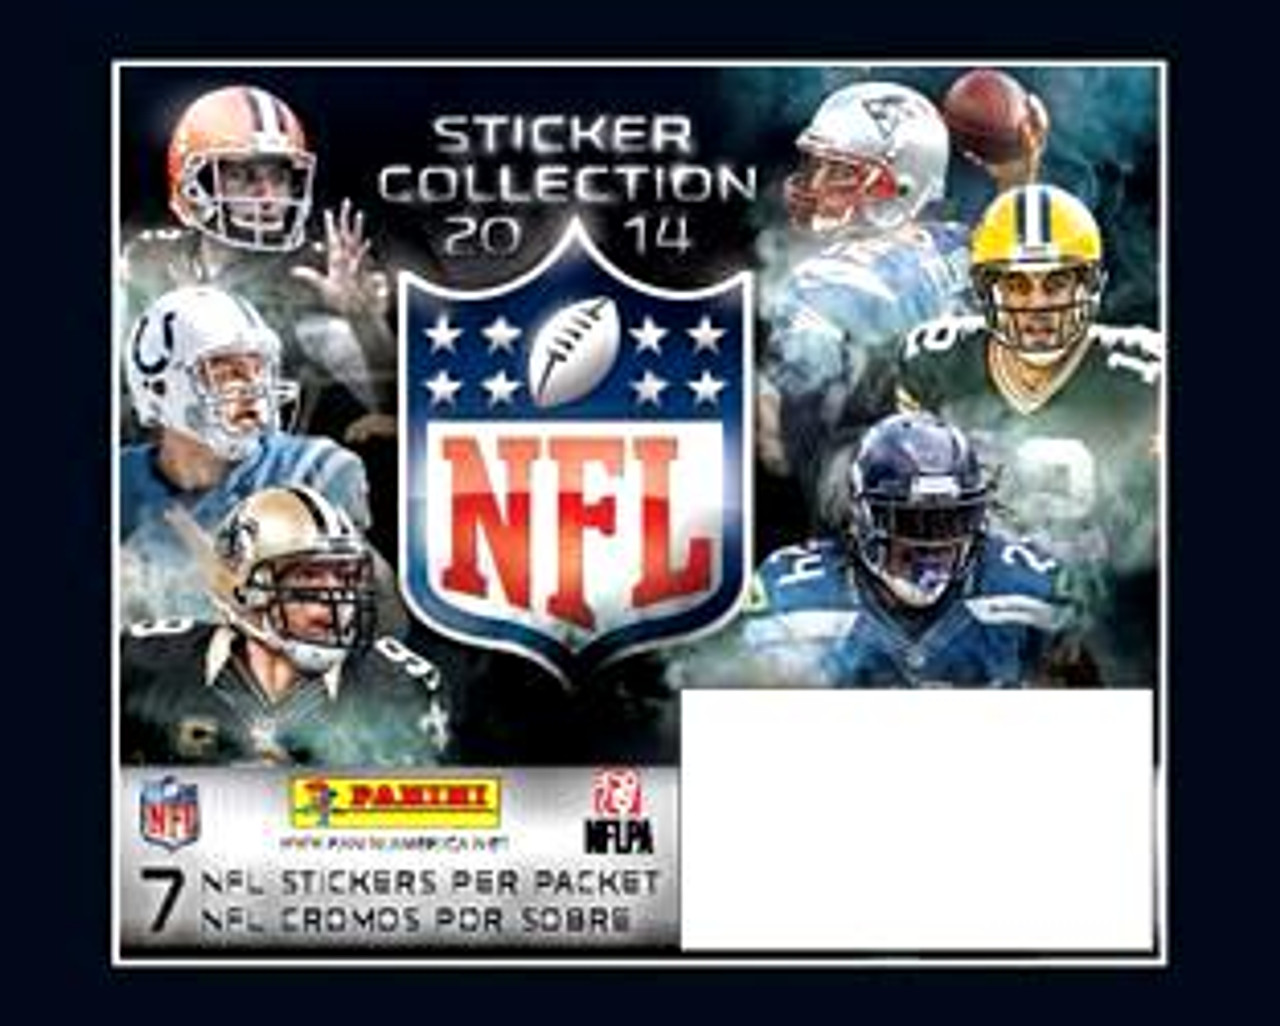 NFL 2014 Sticker Collection Pack Pack [7 Stickers]